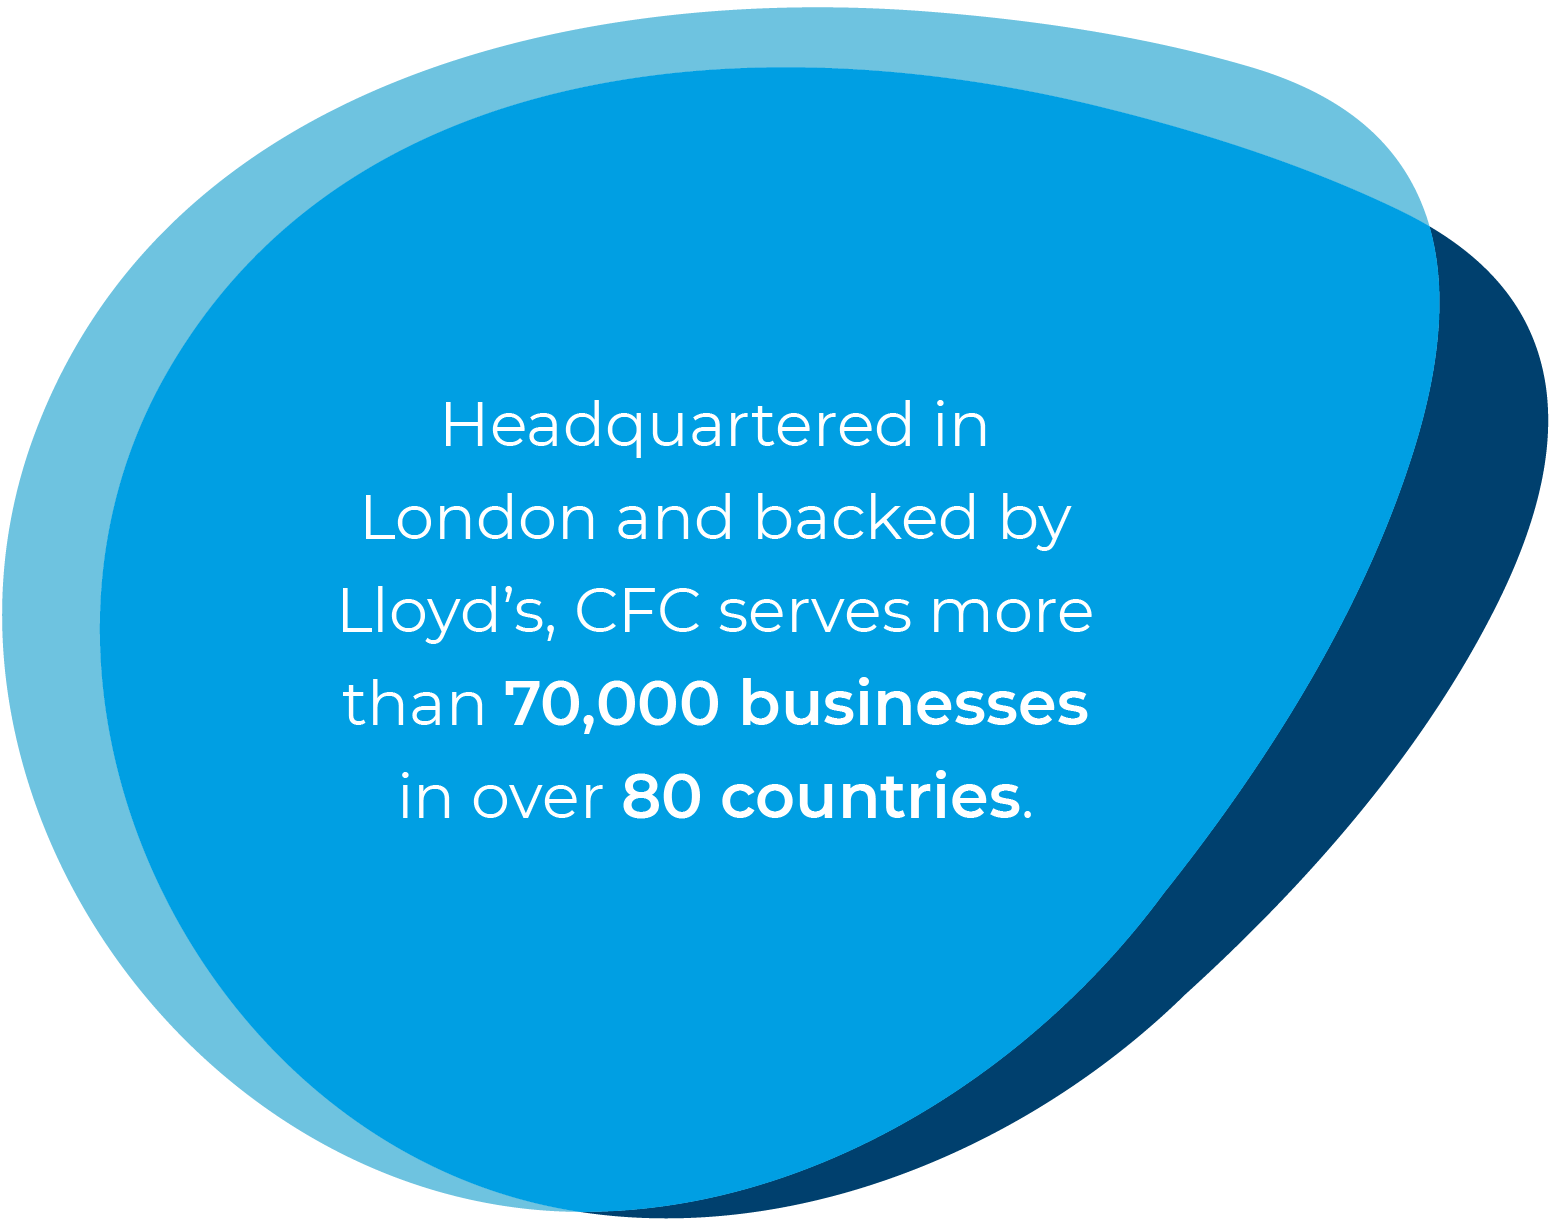 Headquartered in London and backed by Lloyd's, CFC serves more than 70,000 businesses in over 80 countries